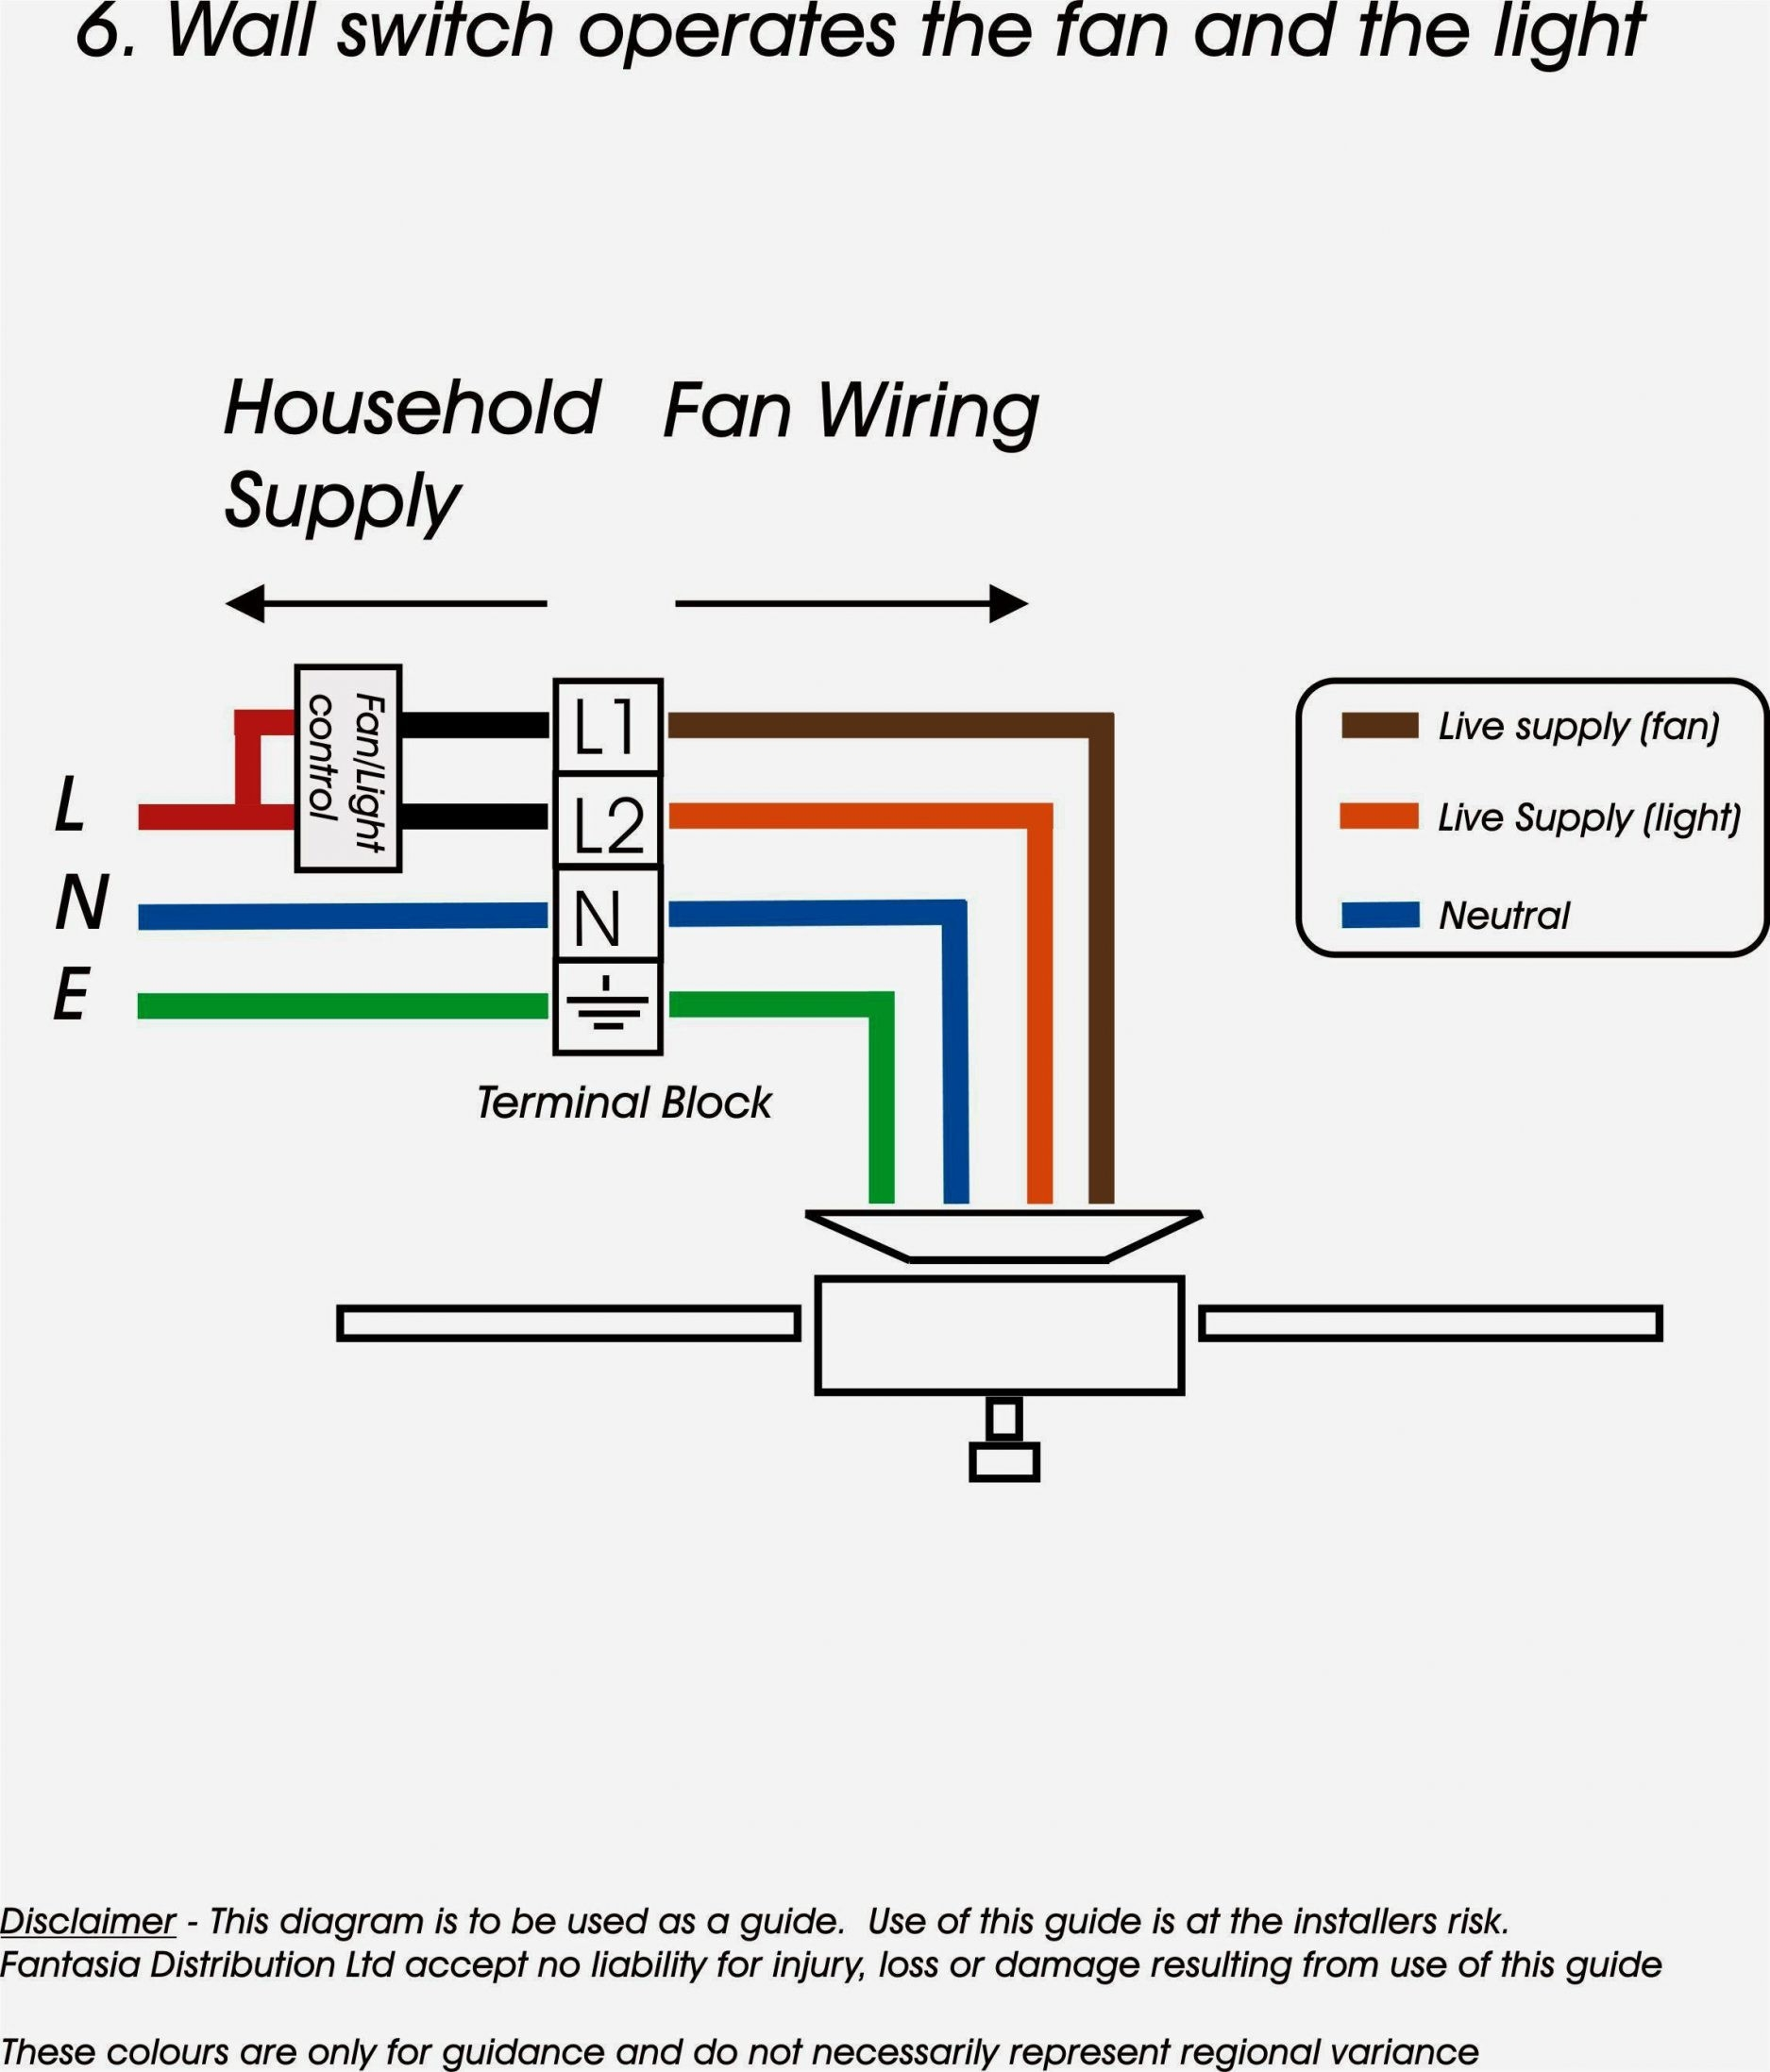 fulham wh5 120 l wiring diagram ballast wiring diagram new slimline diagrams of fulham workhorse 2 rh natebird me 2 lamp ballast wiring diagram 2 lamp ballast wiring diagram 12l 2 lamp t12 ballast wiring diagram wiring diagram library